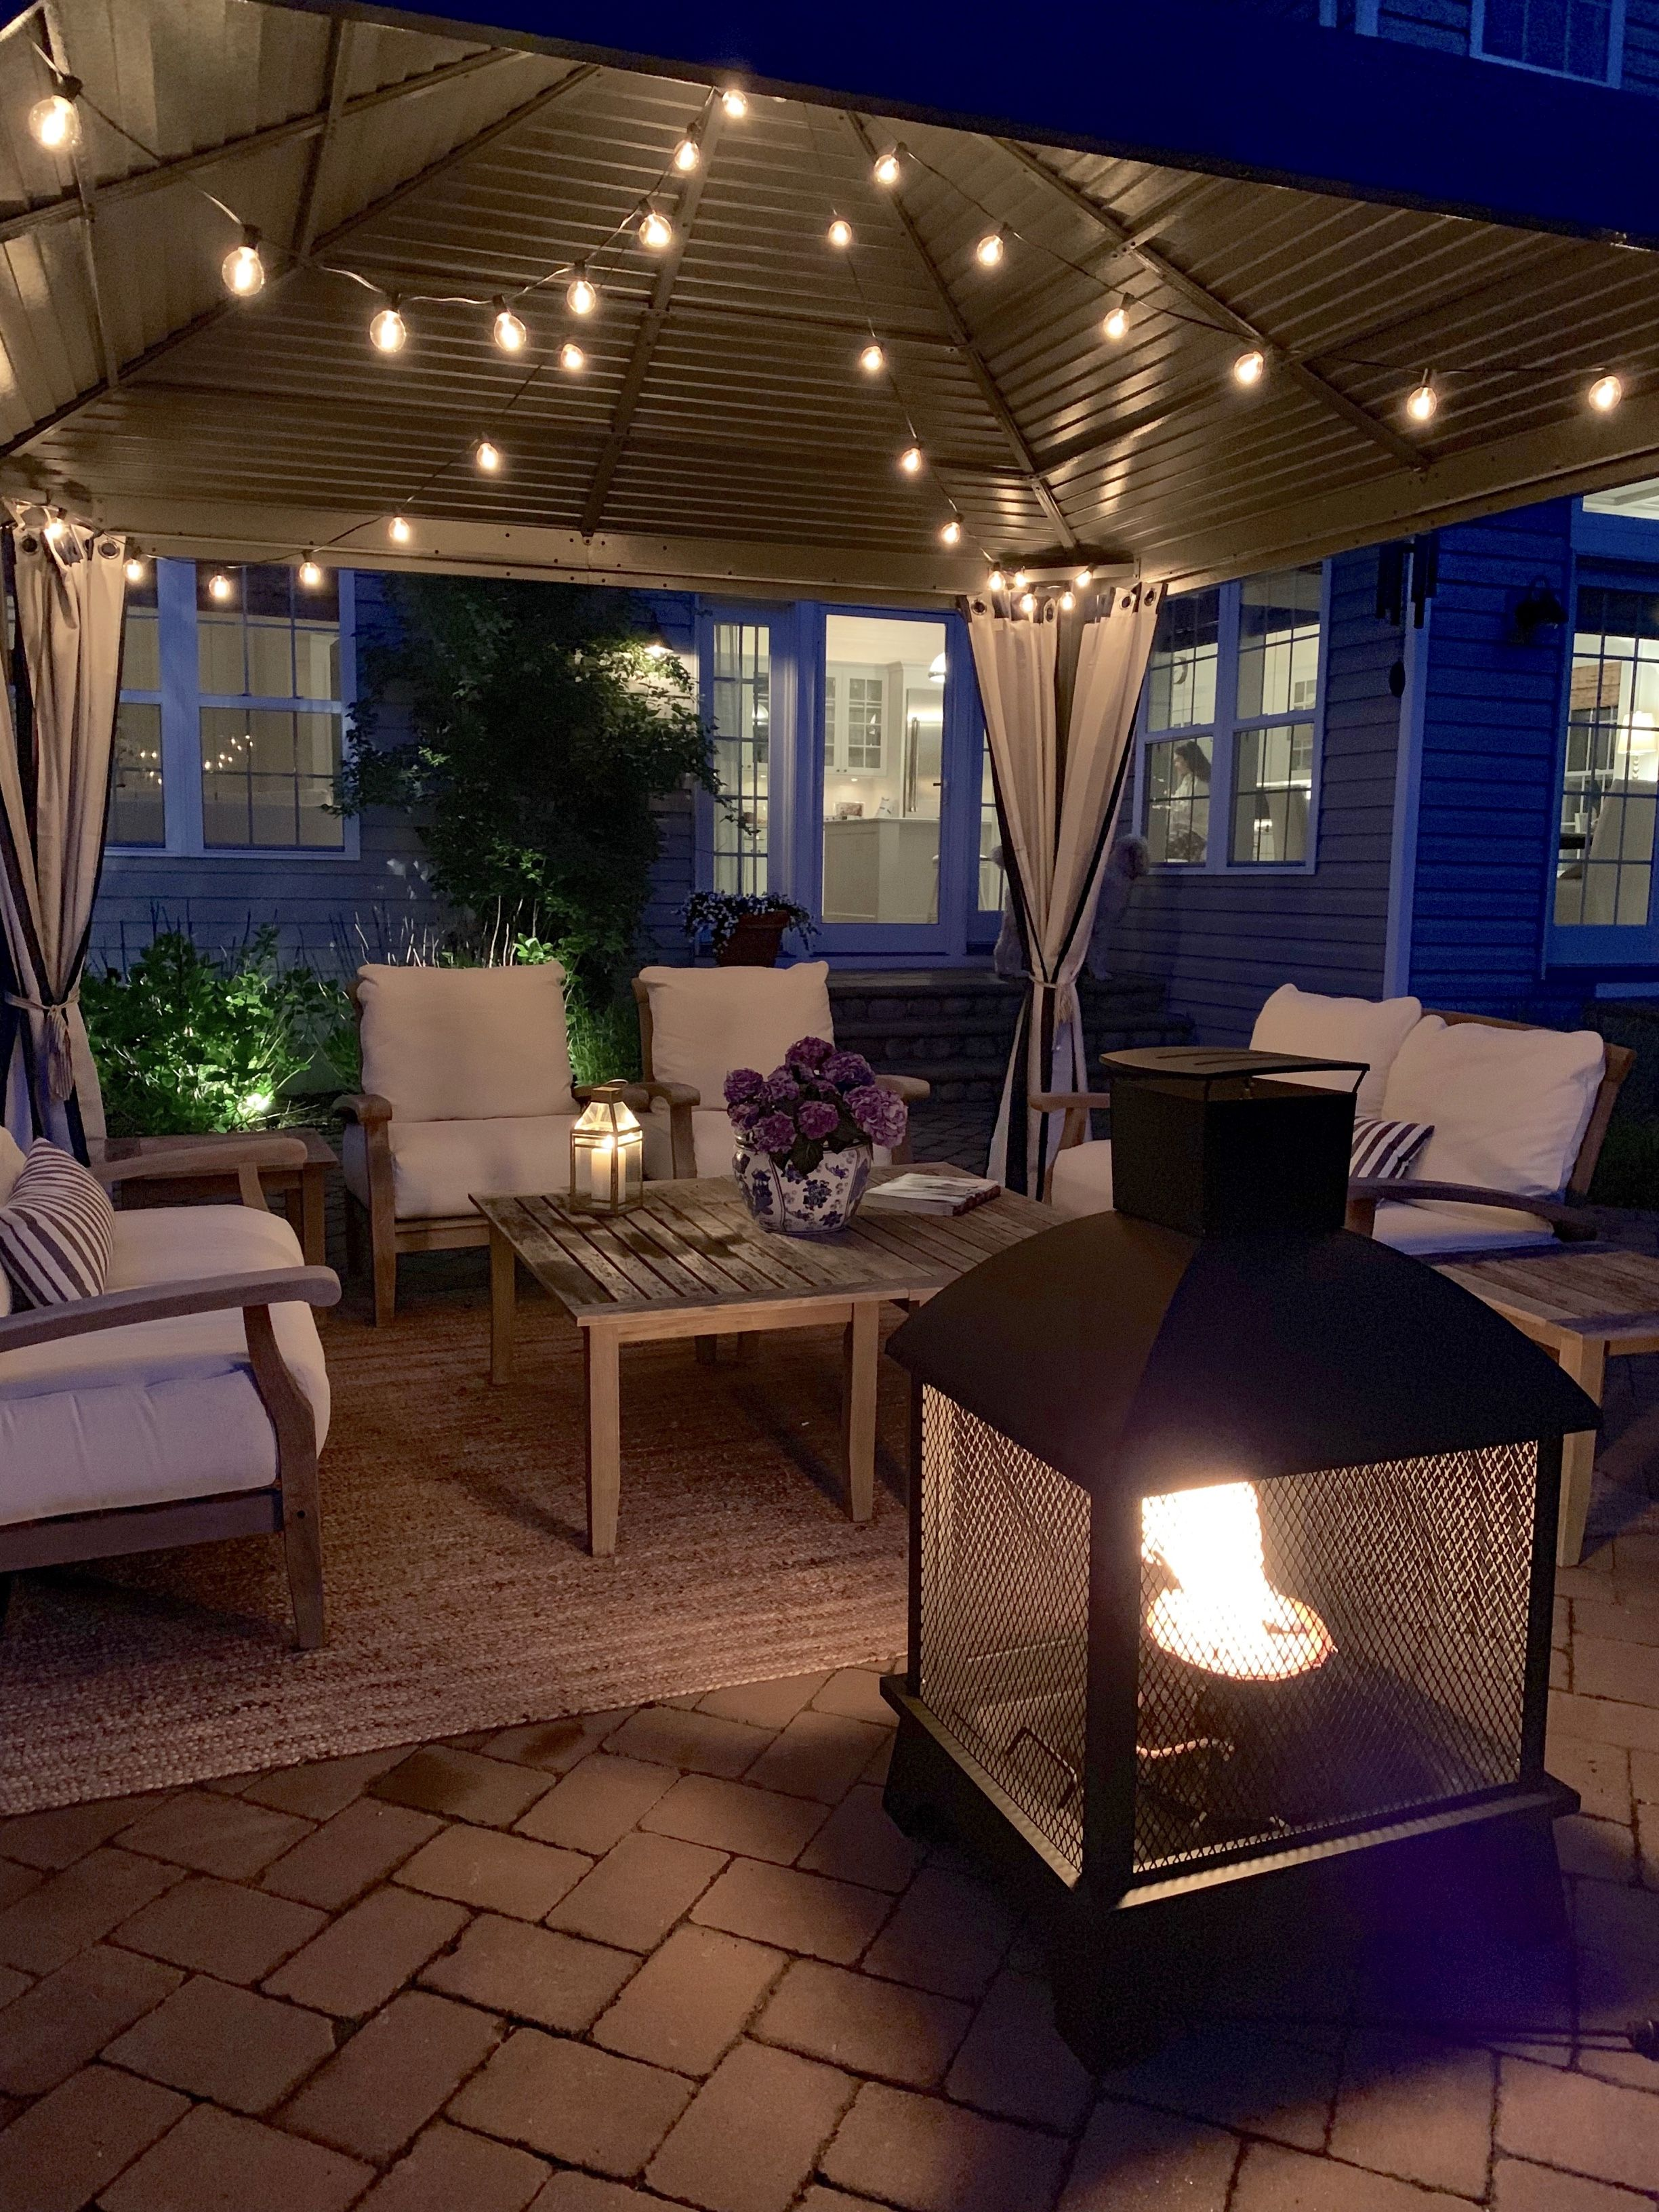 Outdoor Living Room with a SOJAG Gazebo | Gazebo, Outside ... on Ab And Outdoor Living  id=68822